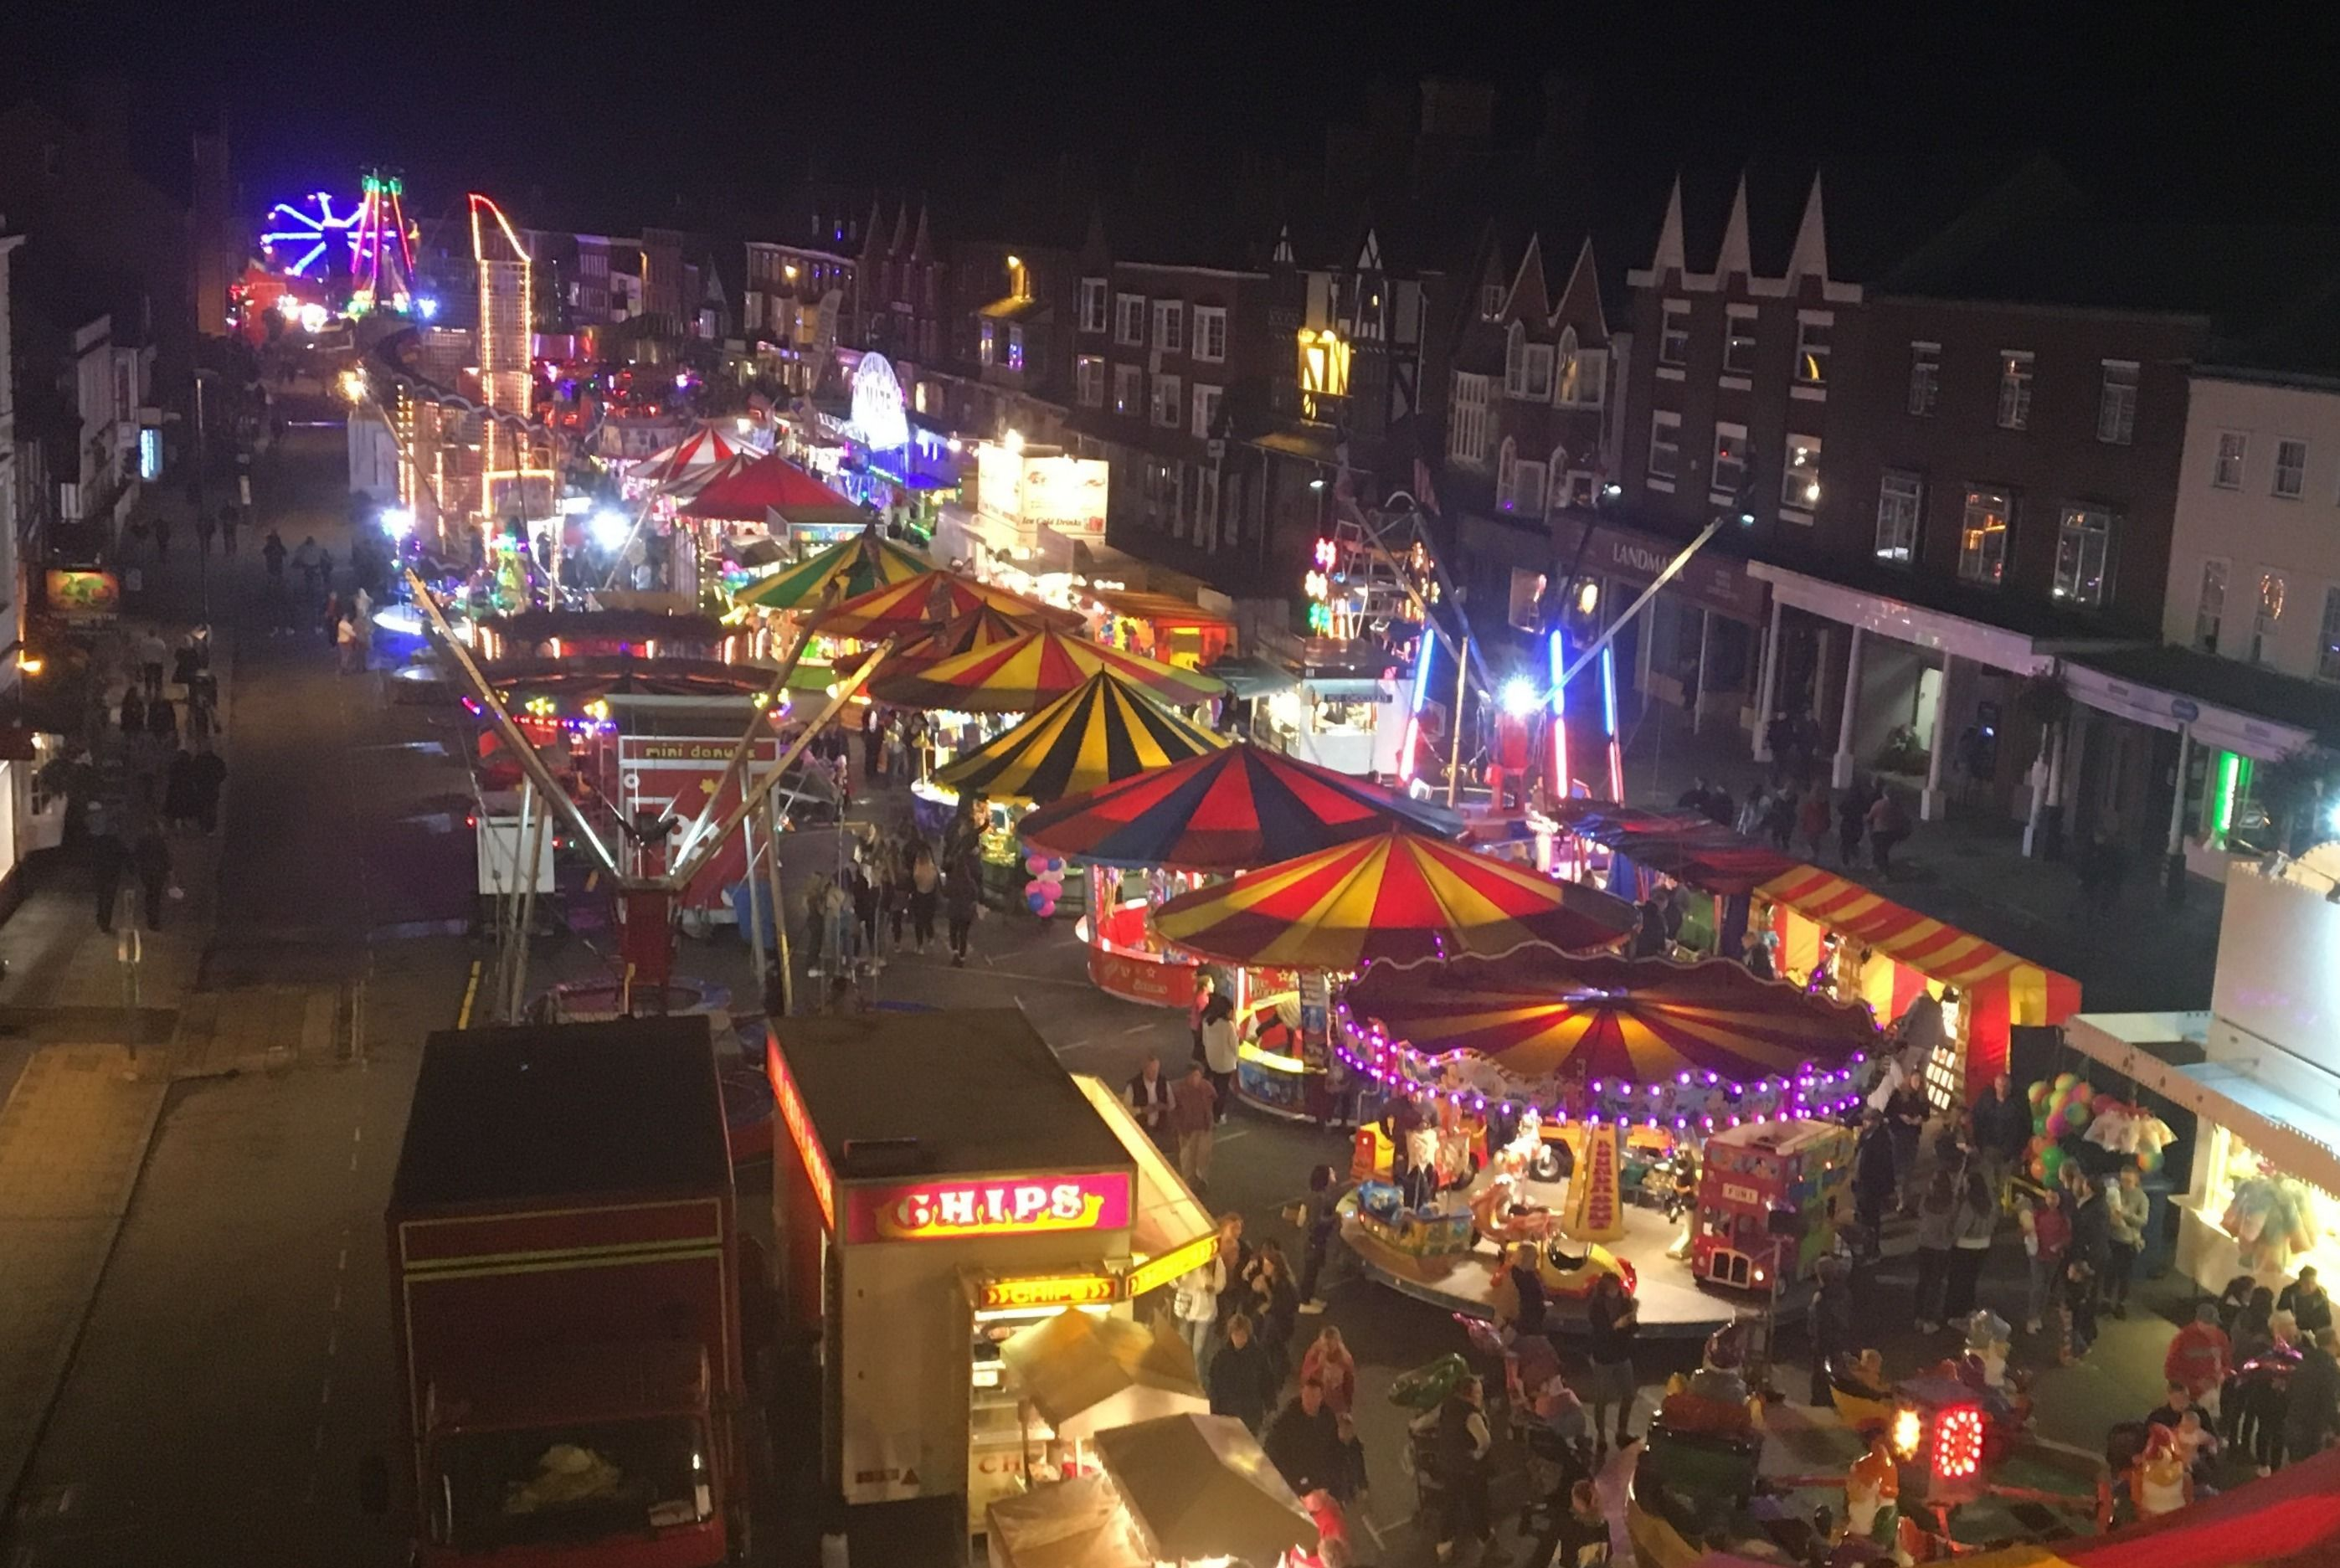 12 October - Mop Fair